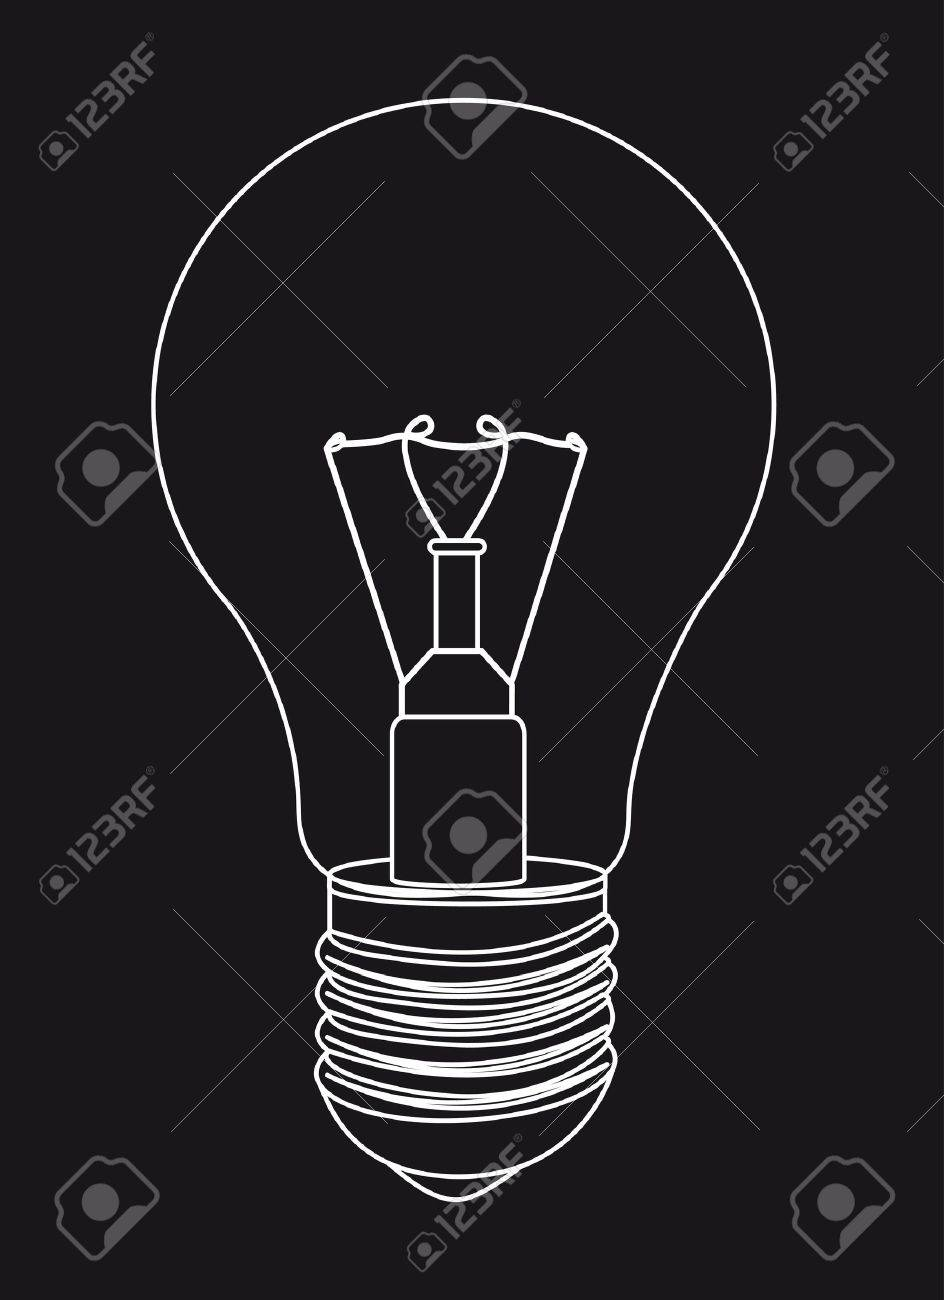 silhouette light bulb over black background. Stock Vector - 13439244